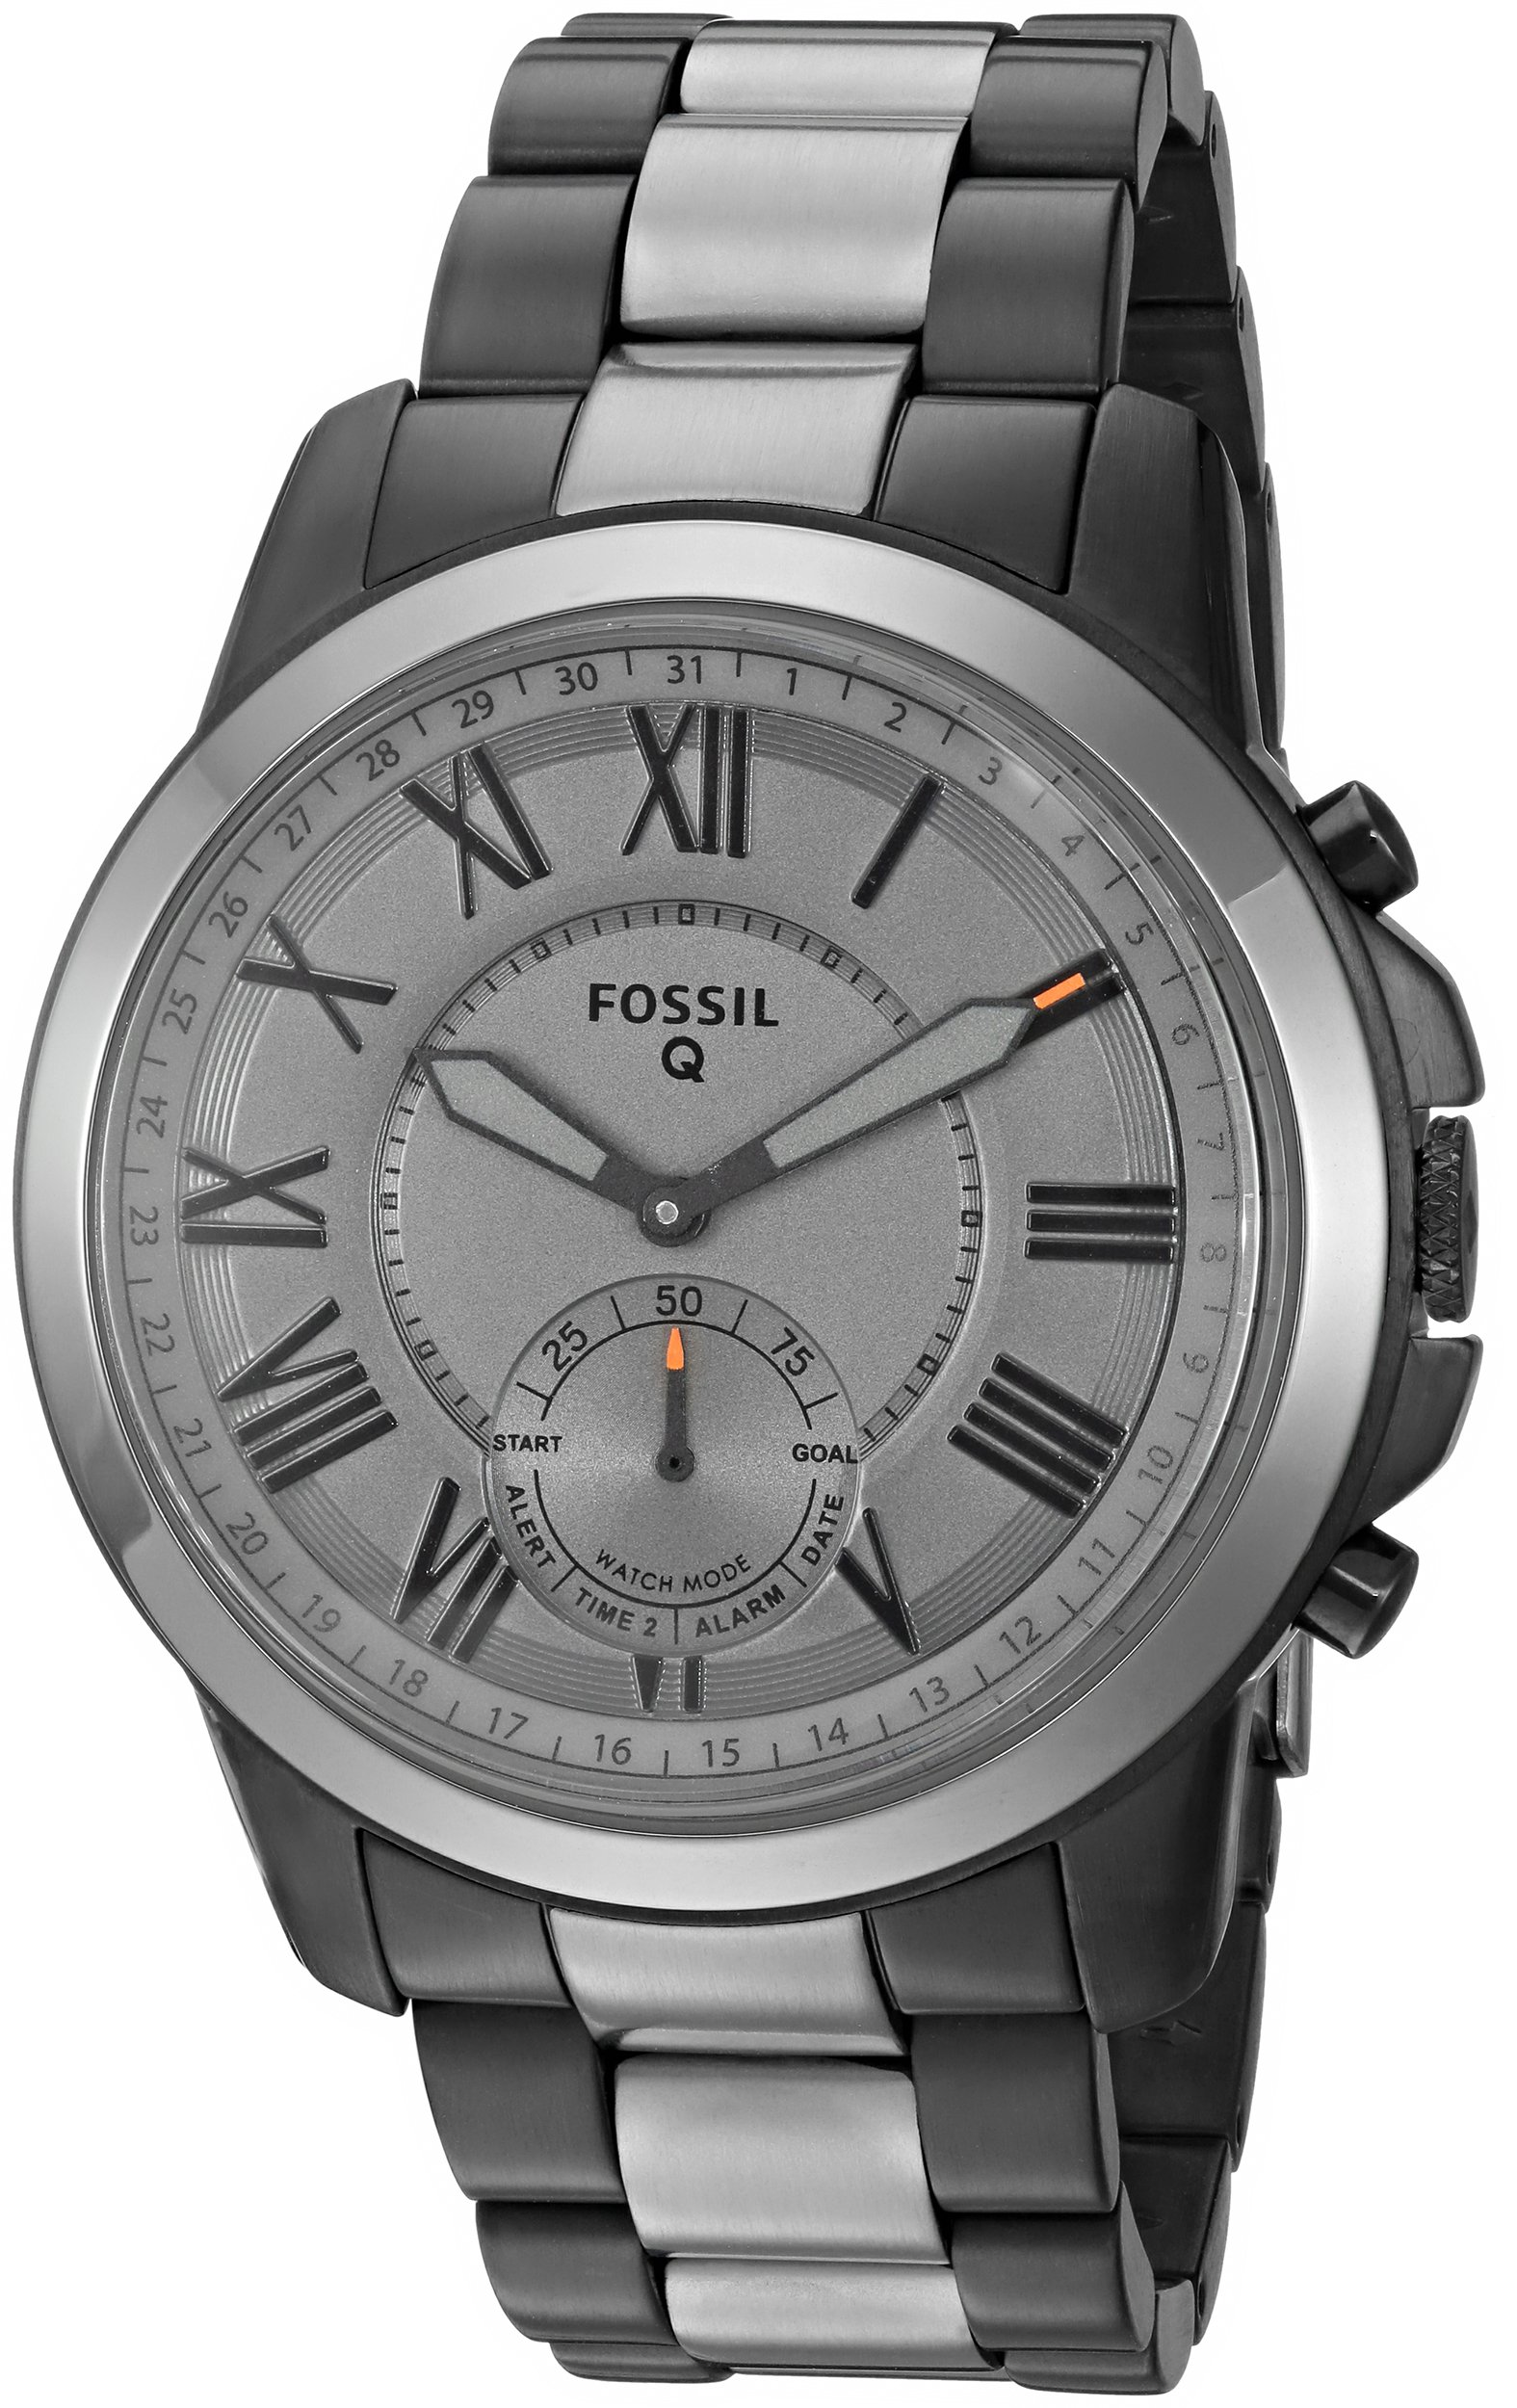 Fossil Q Men's Grant Stainless Steel Hybrid Smartwatch, Color: Grey (Model: FTW1139) by Fossil